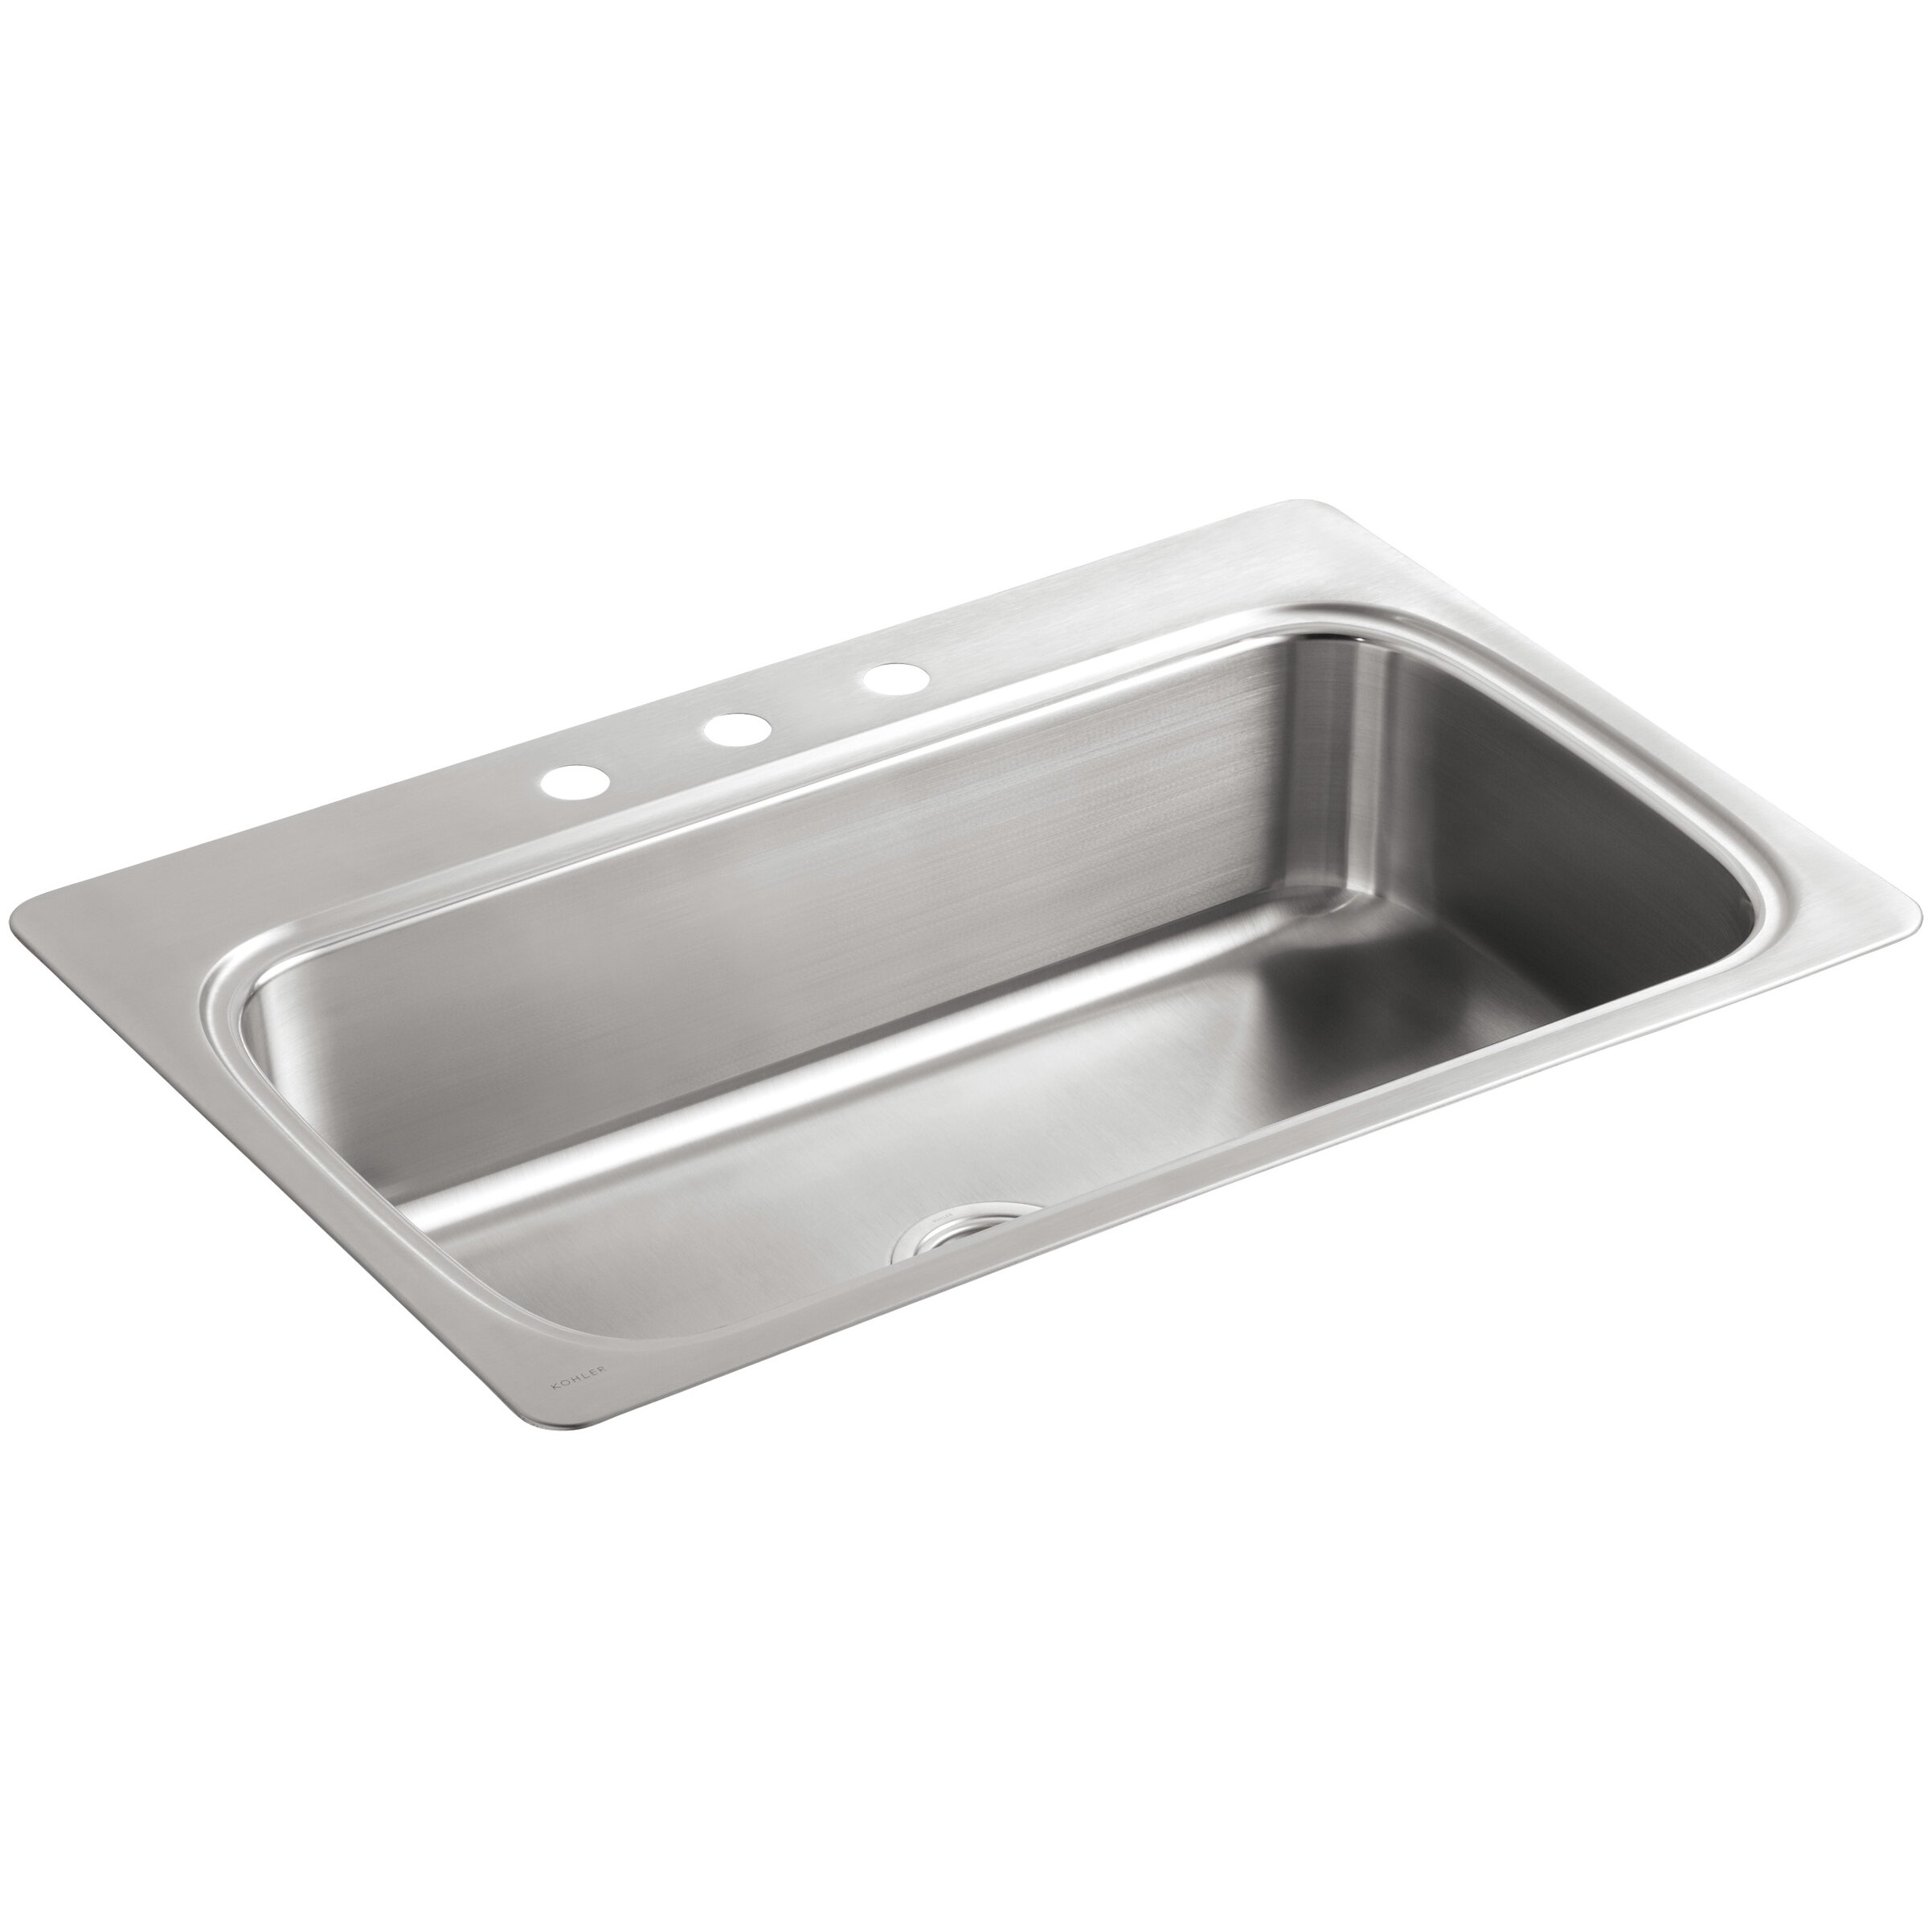 Kohler Single Basin Kitchen Sink : Kohler Verse 33